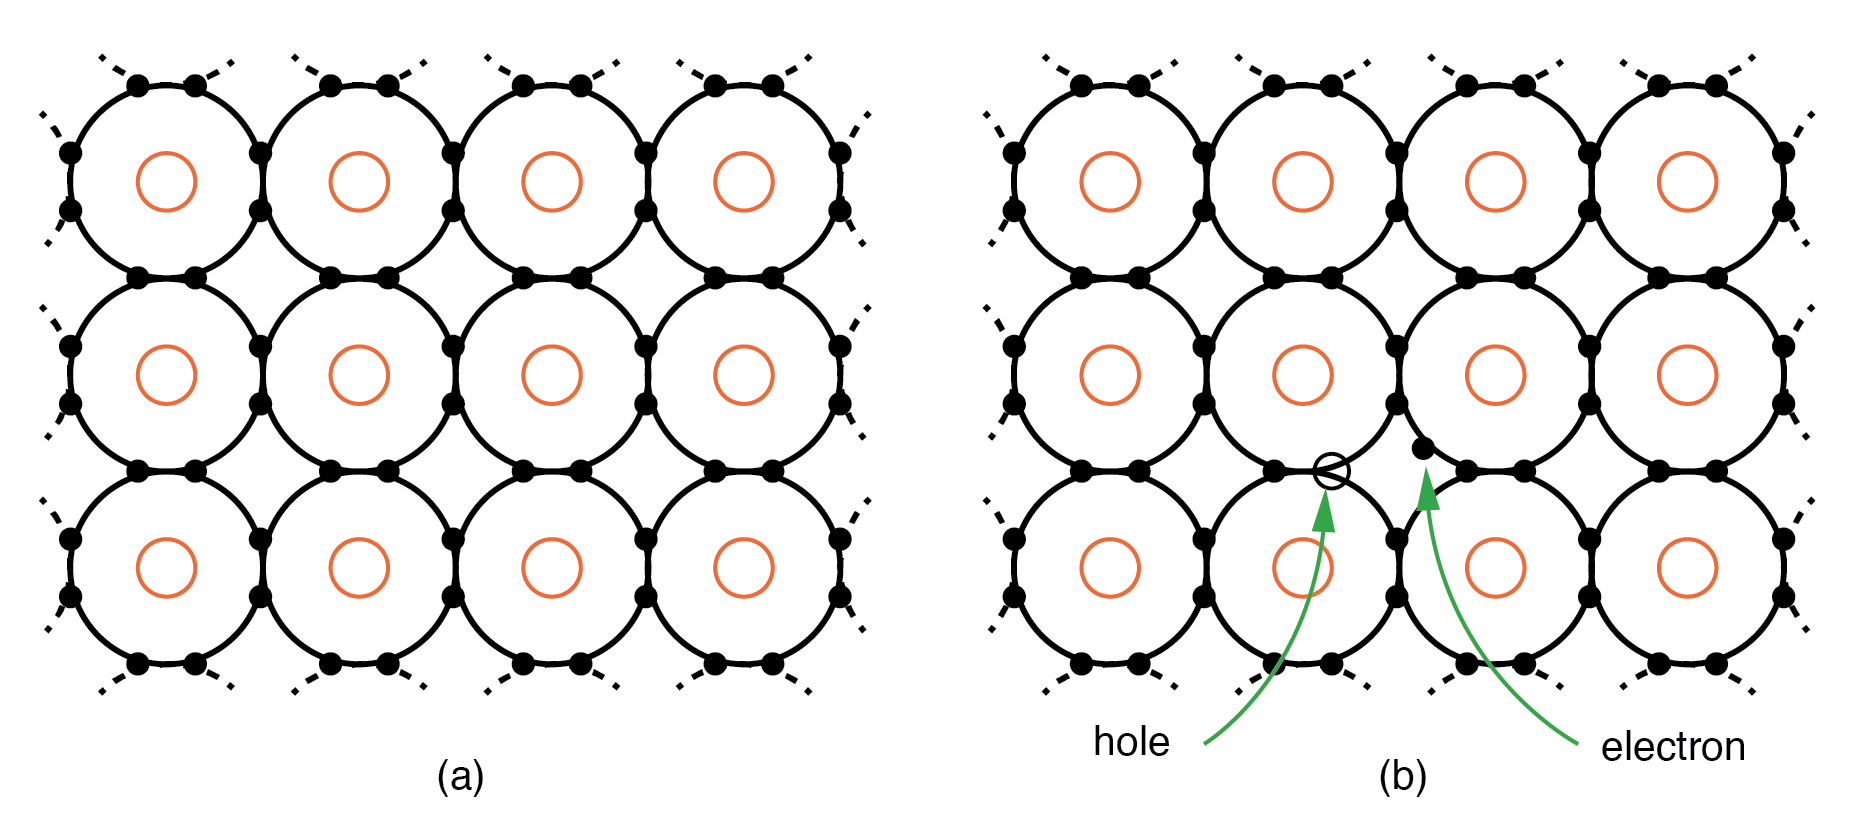 2 5 Electrons And Holes